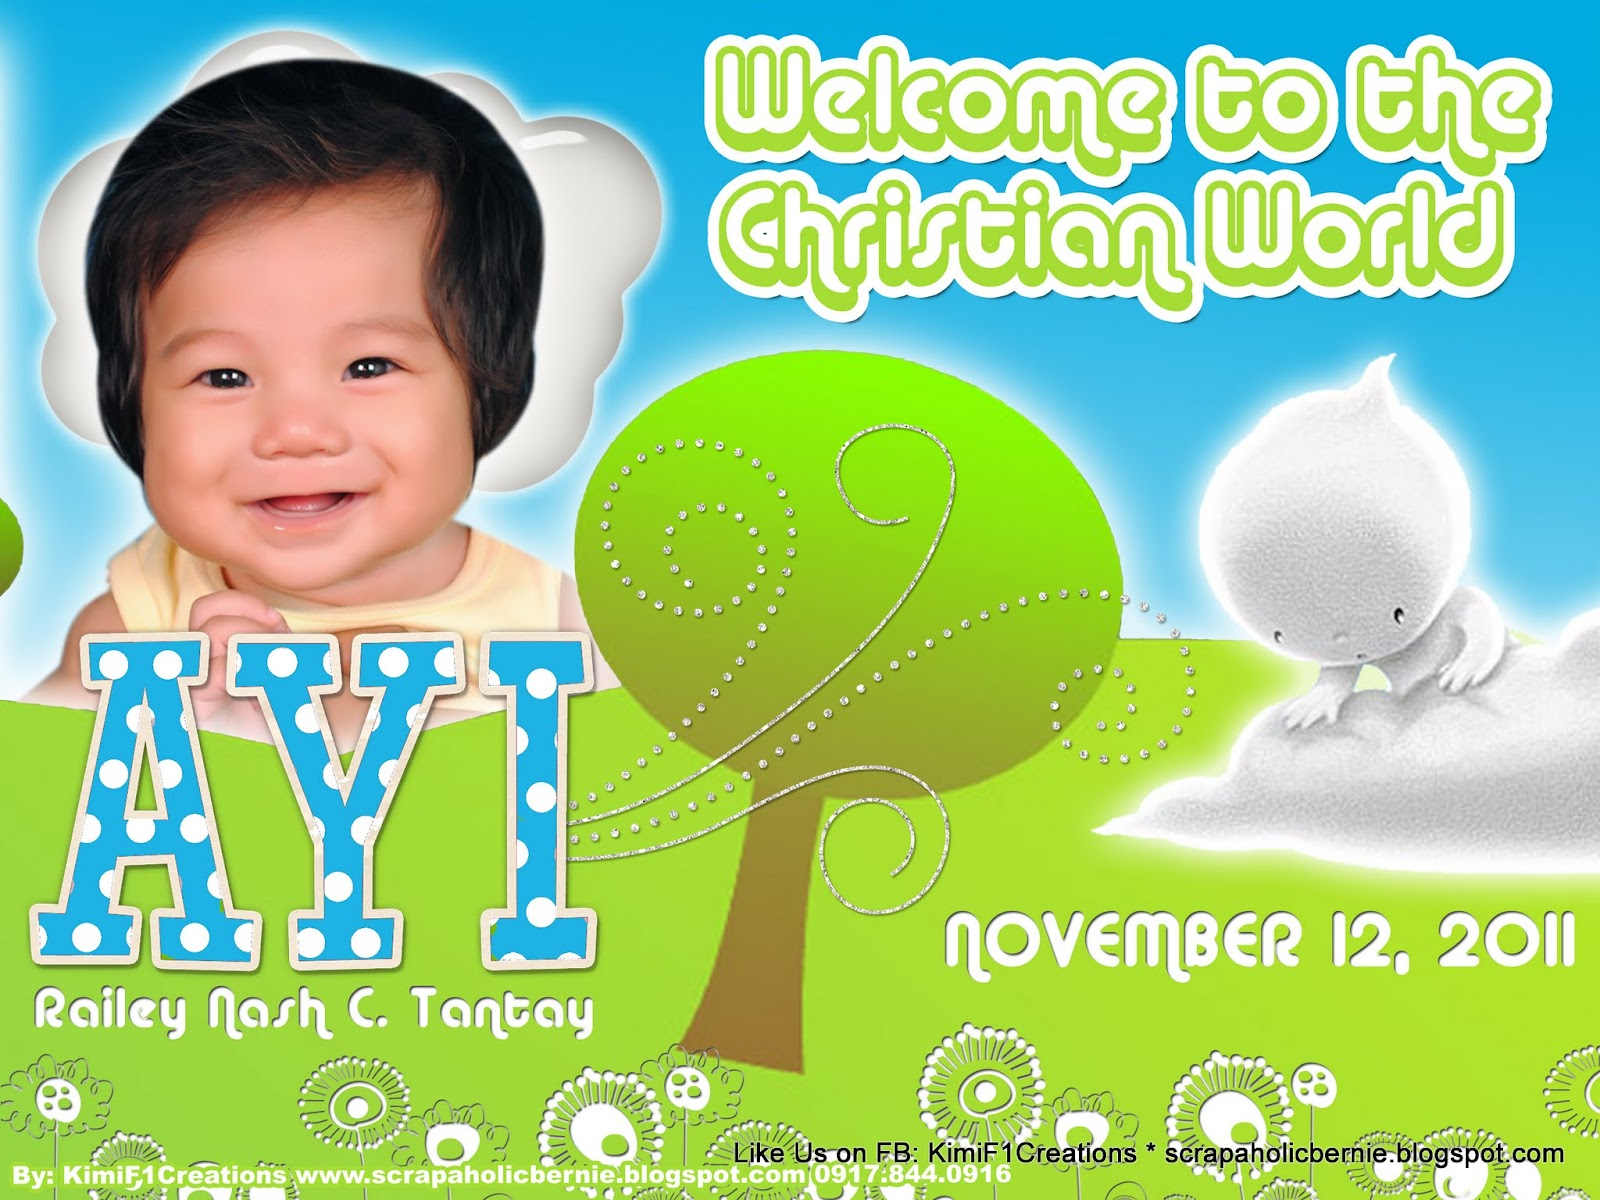 F1 digital scrapaholic baptismal tarpaulin layout for sp mom baptismal tarpaulin layout for sp mom kathleen tantay aka kathnrhai stopboris Images